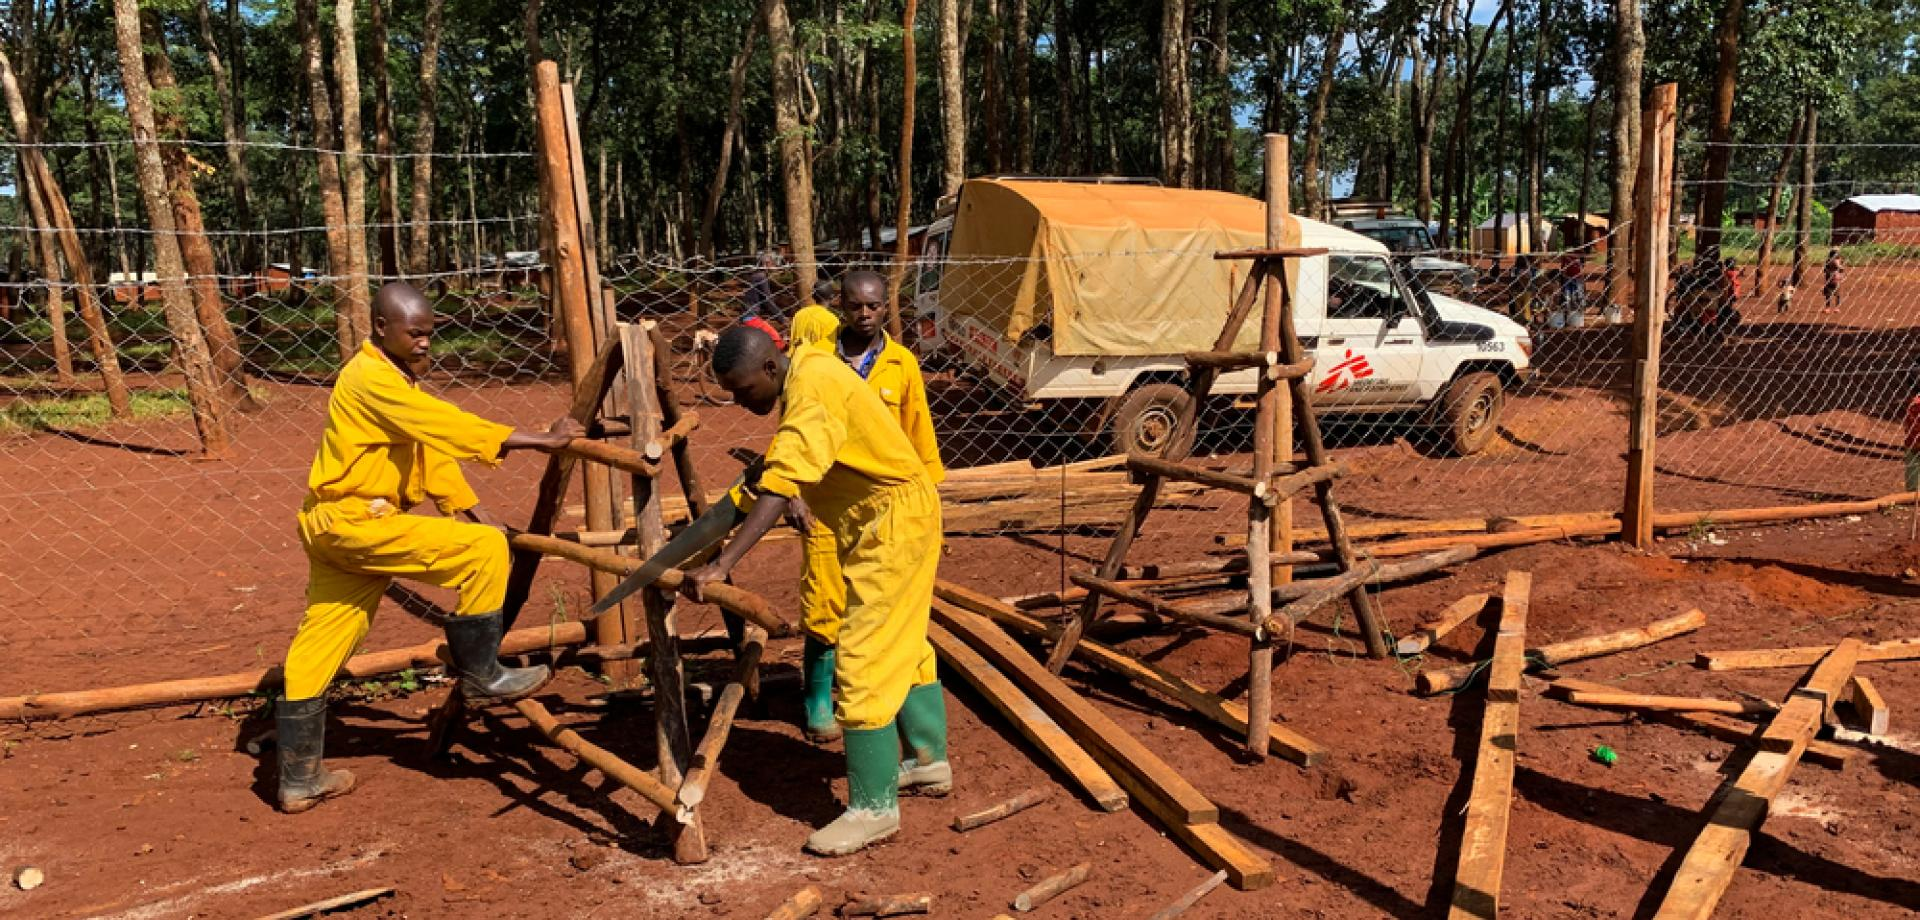 Workers build a temporary triage and isolation area as MSF steps up preparedness measures for COVID-19 at Nduta refugee camp in northwest Tanzania.